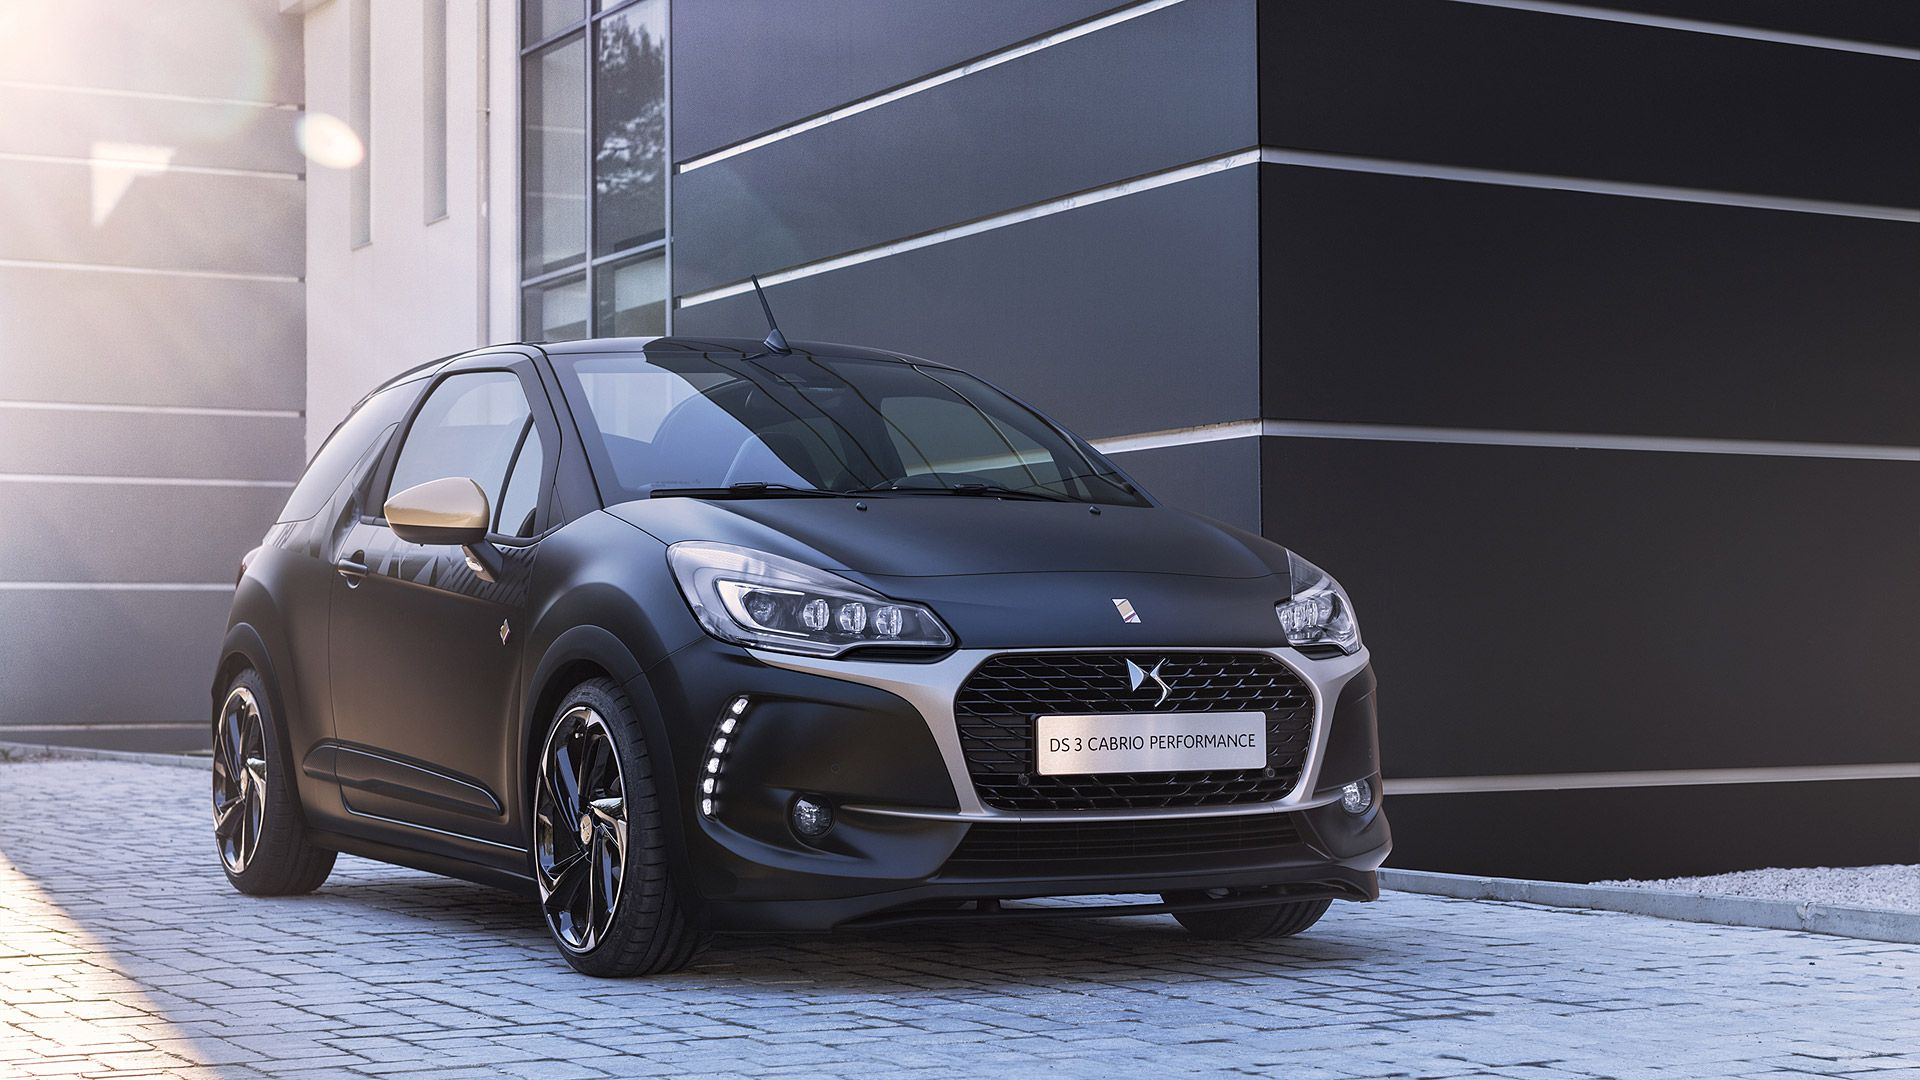 2016 DS 3 Performance http://www.wsupercars.com/ds-2016-3-performance.php